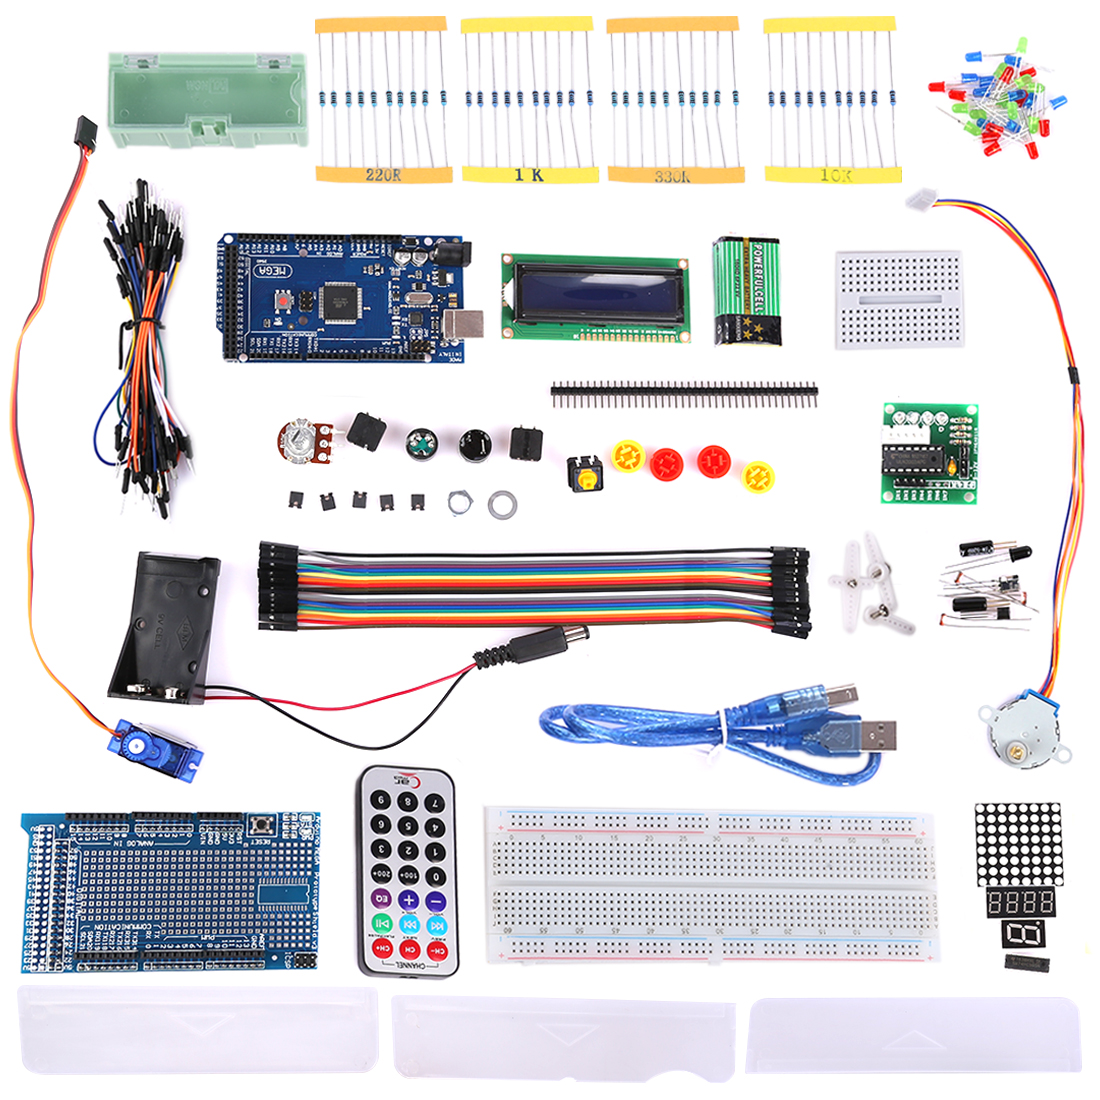 MODIKER Diy Kit For Mega2560 Starter Learning Basic Kit For Arduino Beginner Programmable Toys